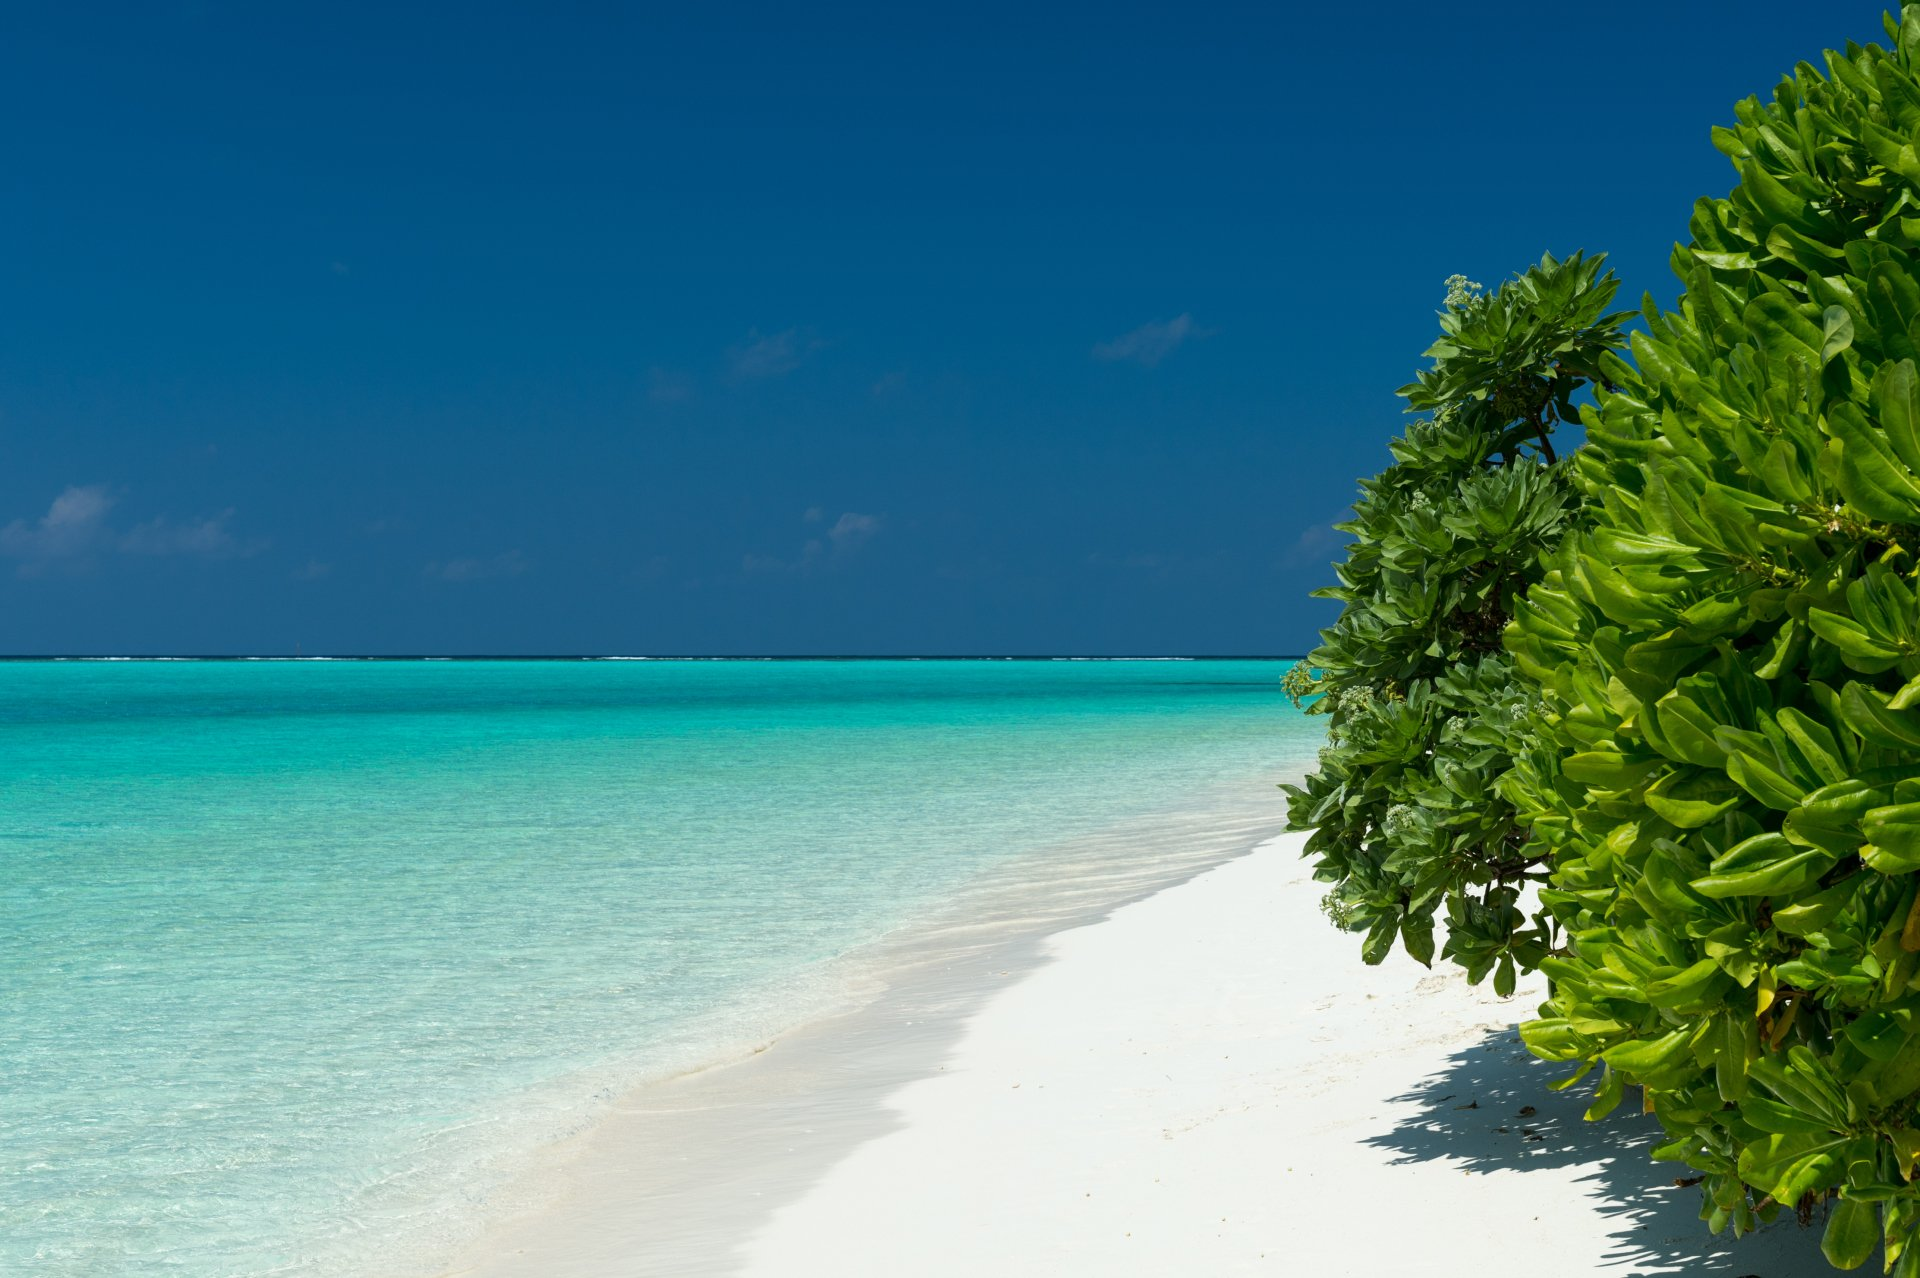 Jorden/Natur - Havet  Jorden/Natur Sea Turquoise Tree Tropical Maldives Horizon Bakgrund